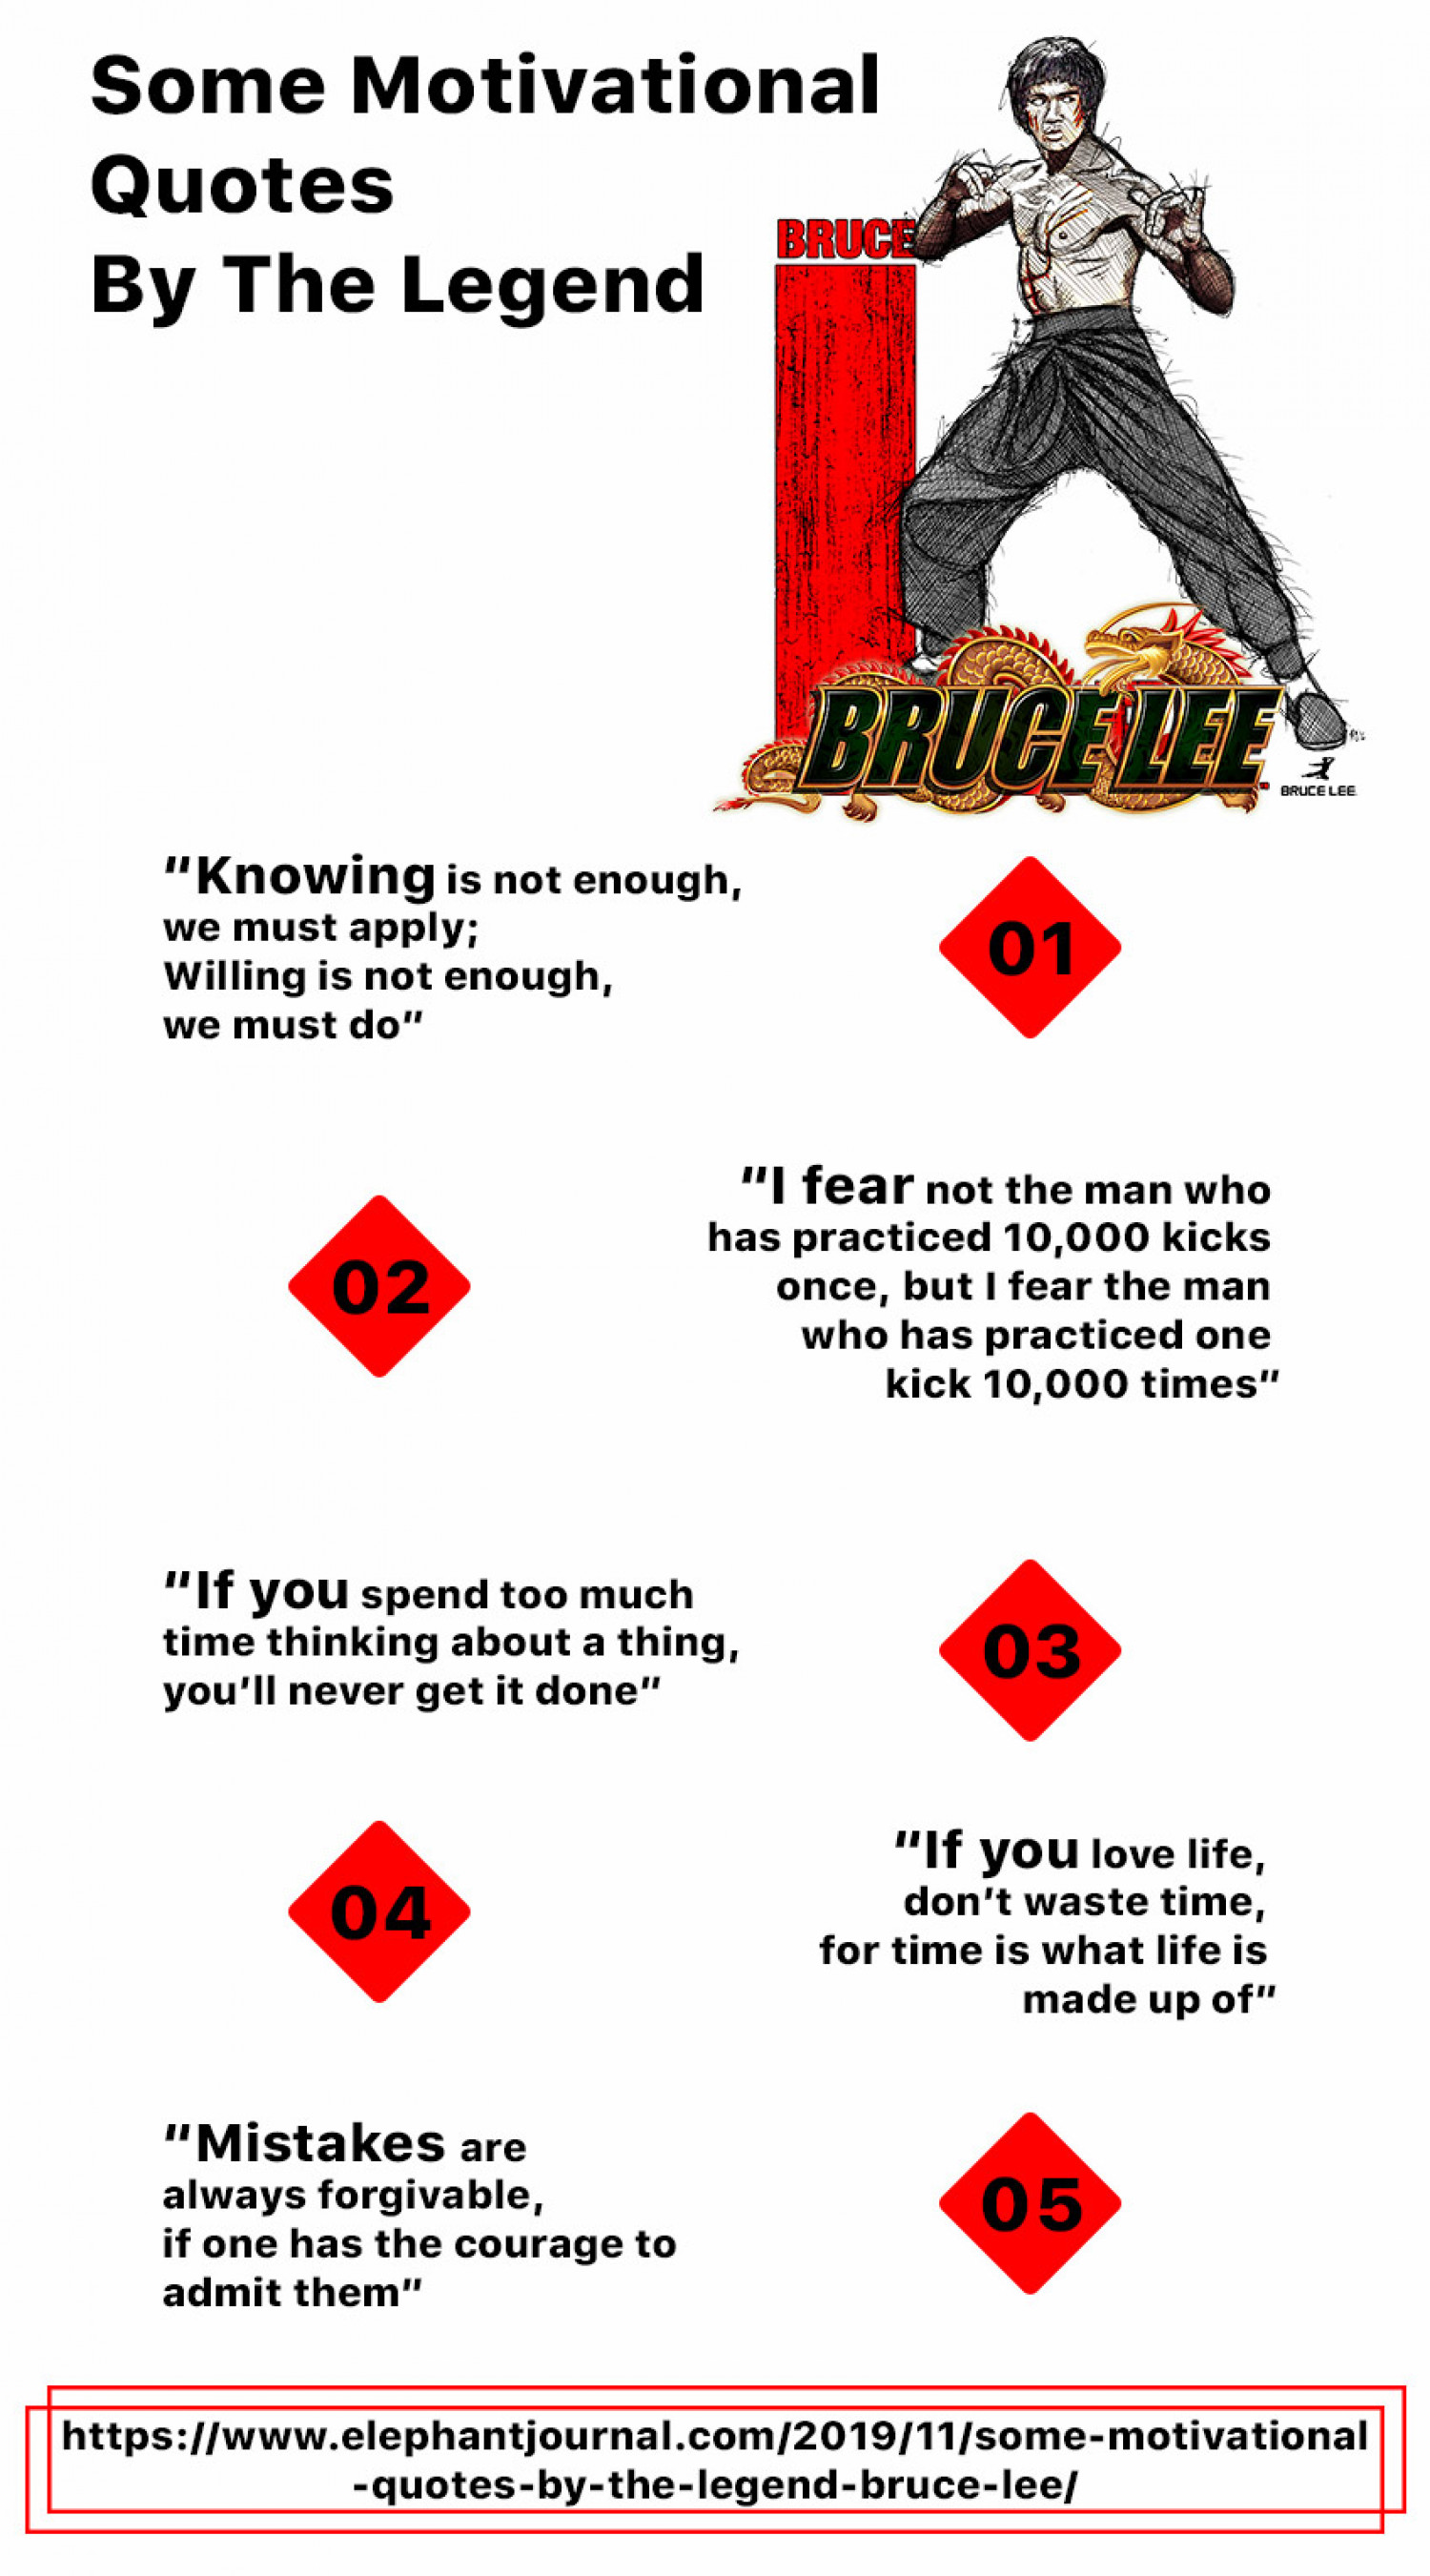 Kunal Bansal Chandigarh sharing some Motivational Quotes By The Legend Bruce Lee Infographic